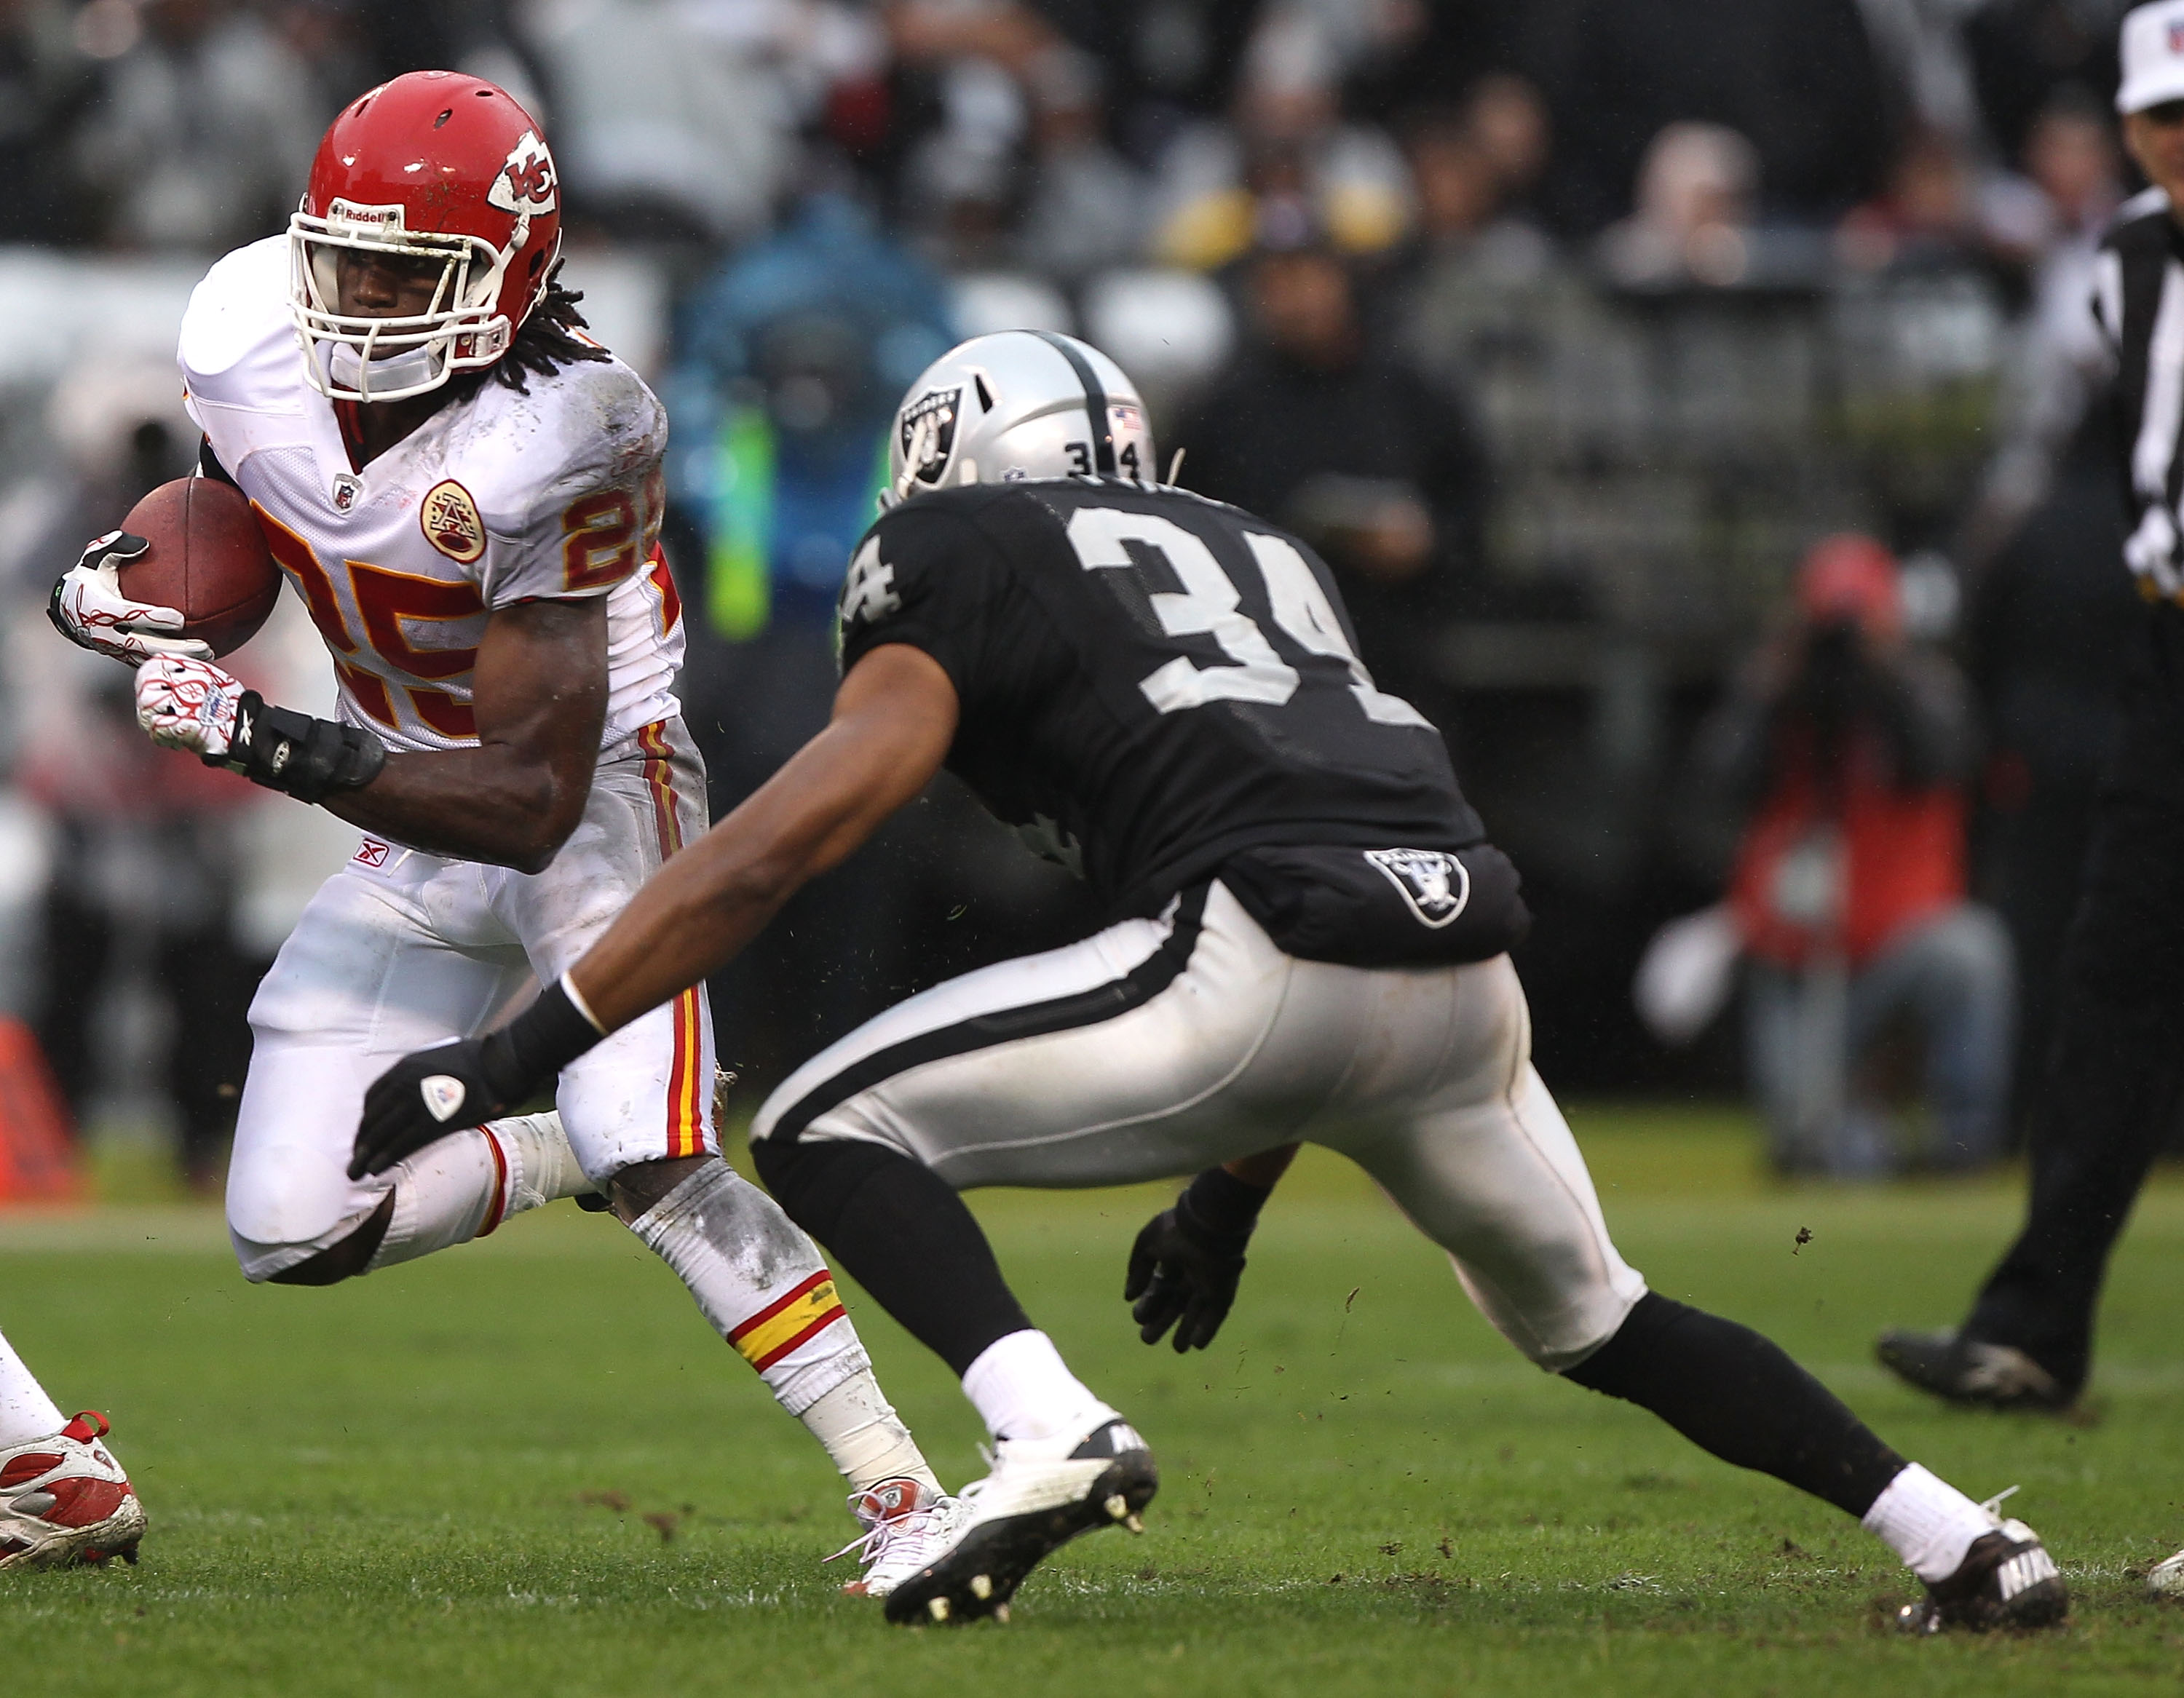 Mike Mitchell: Another new star for the Oakland Raiders defense